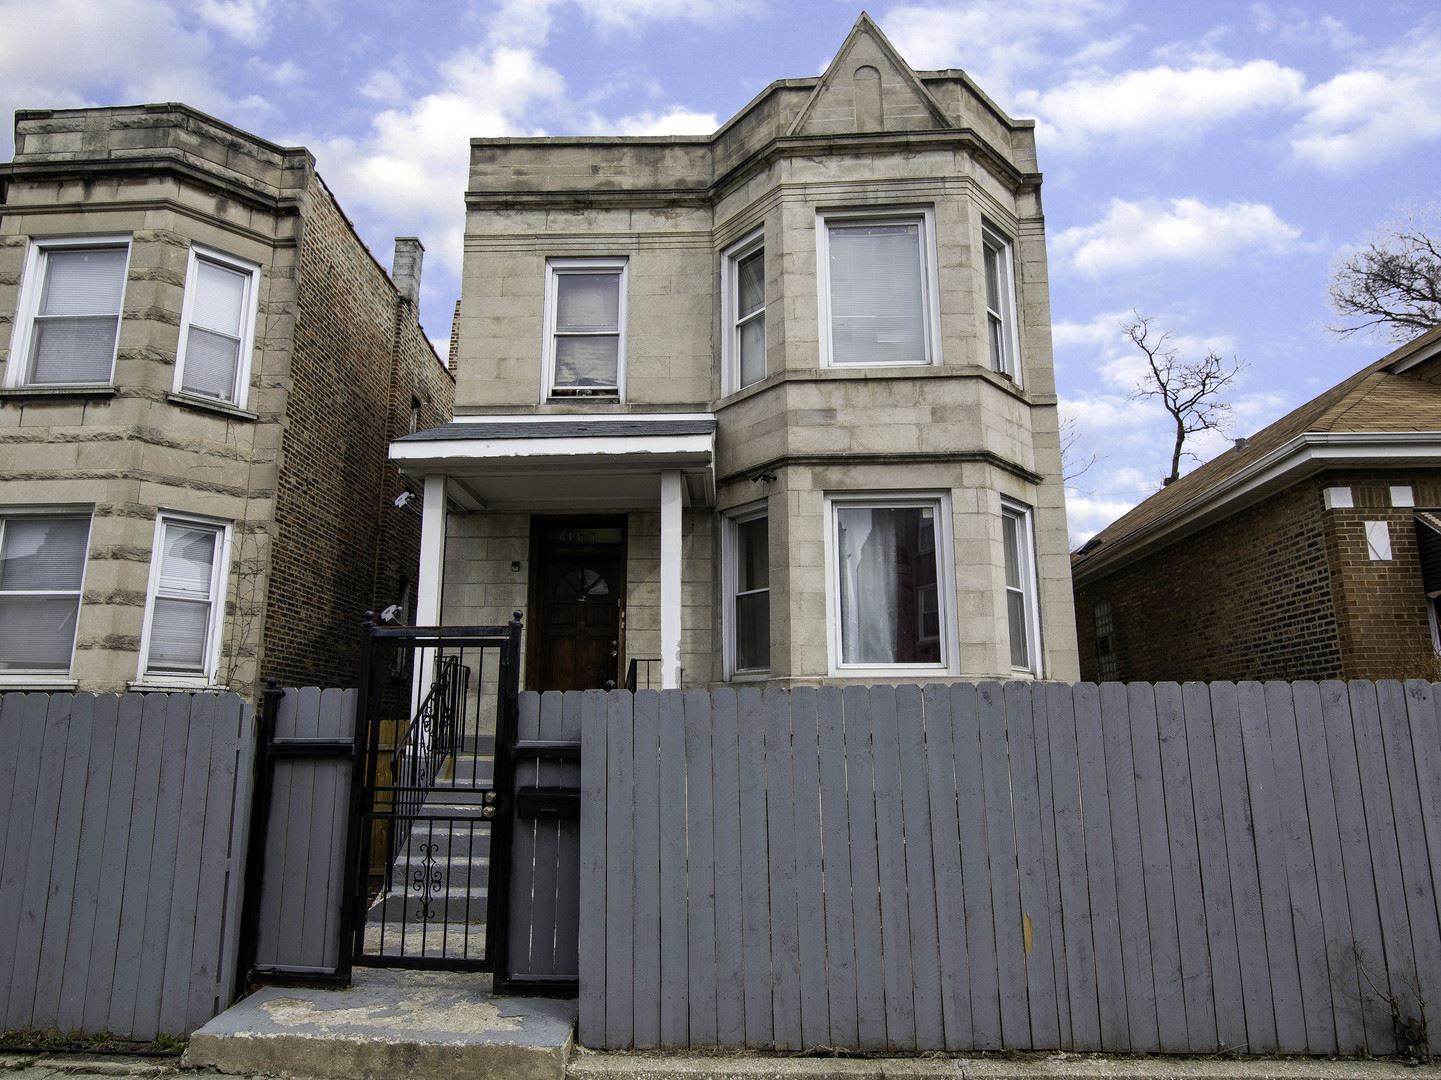 4106 W 21st Street, Chicago, IL 60623 - #: 10676846